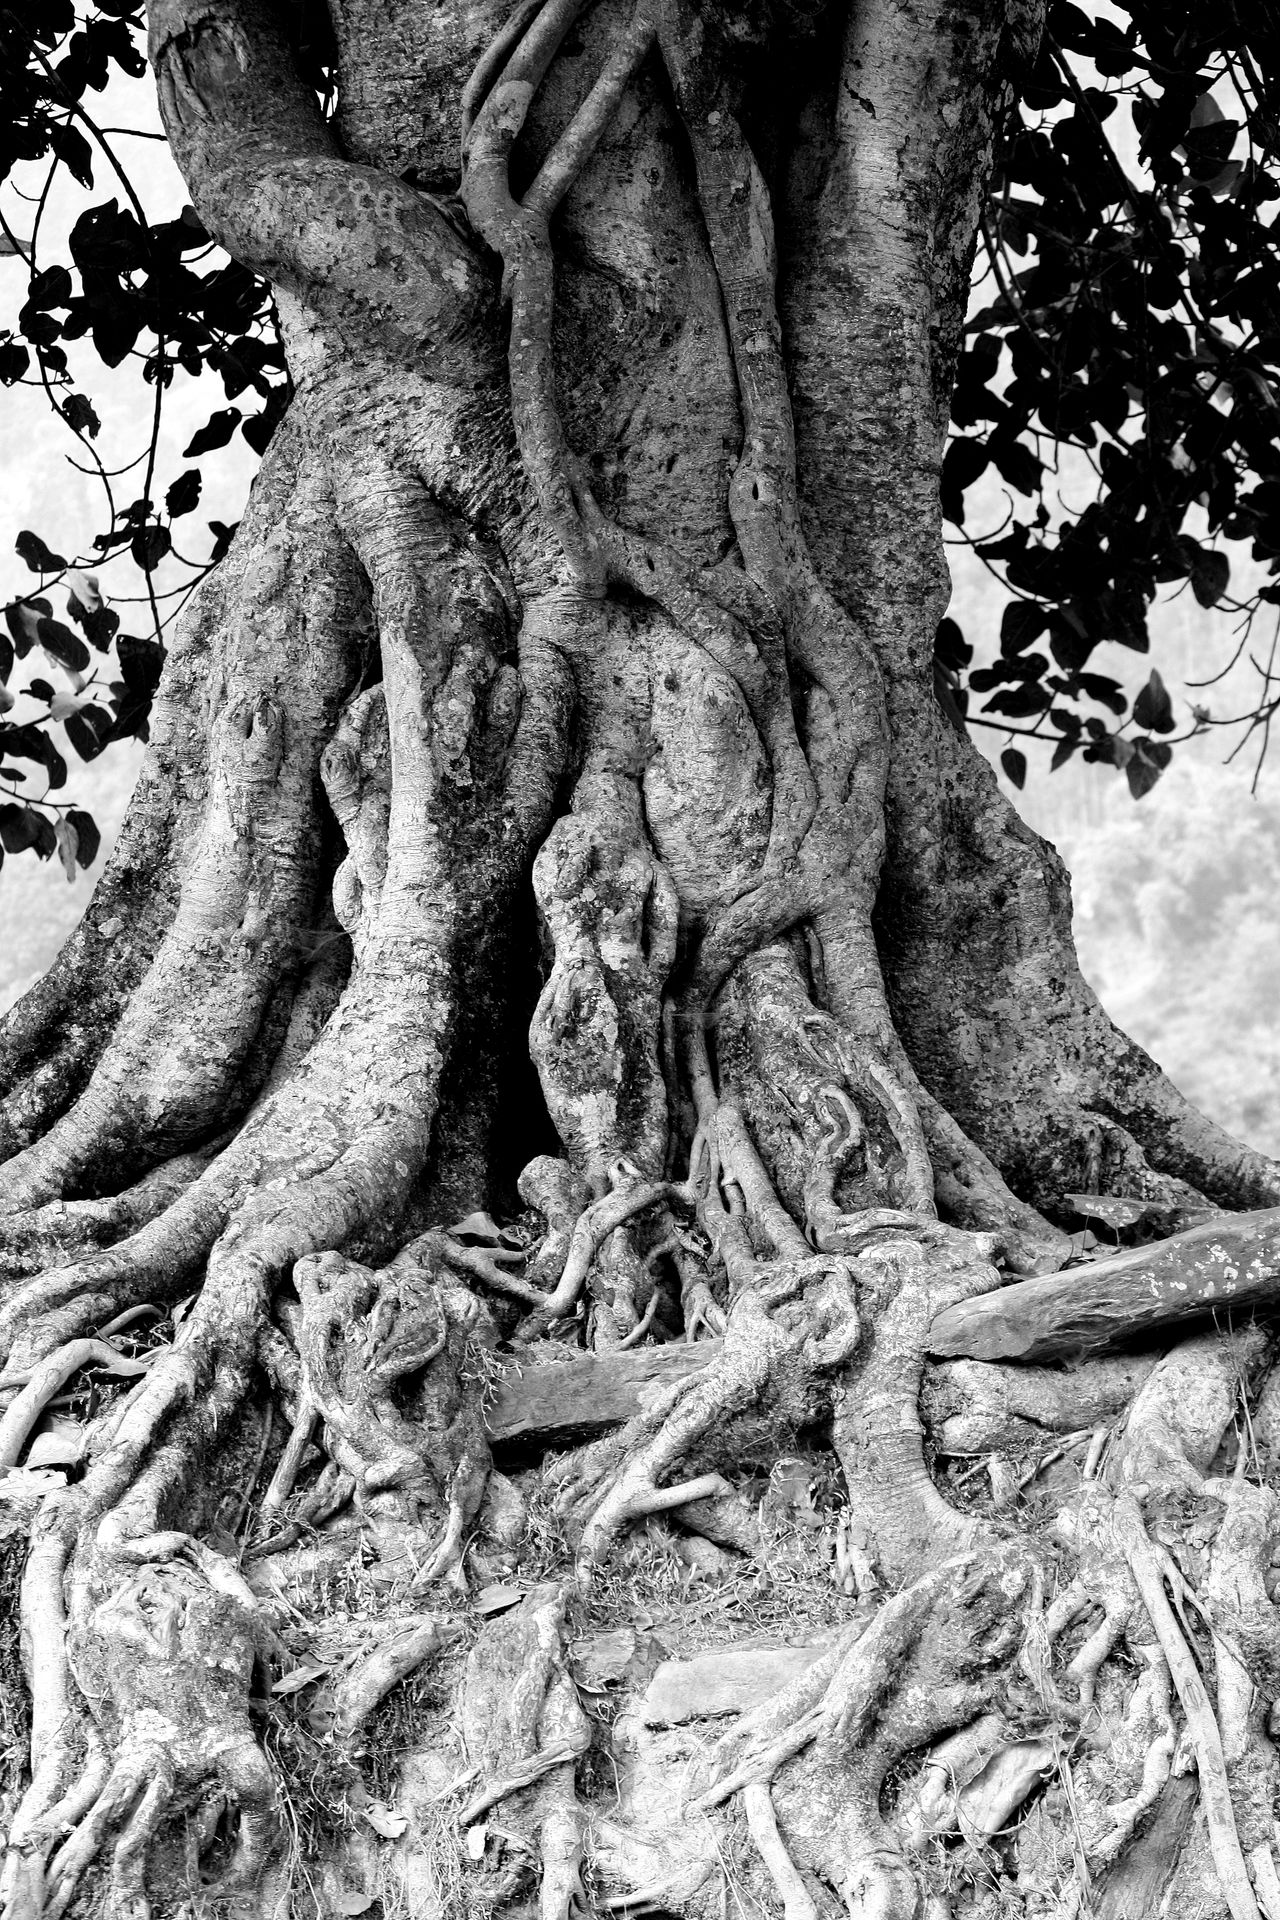 Beauty Of Nature Black And White Black And White Photography Black&white Full Frame Natural Pattern Nature's Diversities Nature_collection Roots Roots Of Tree Tree Tree Trunk